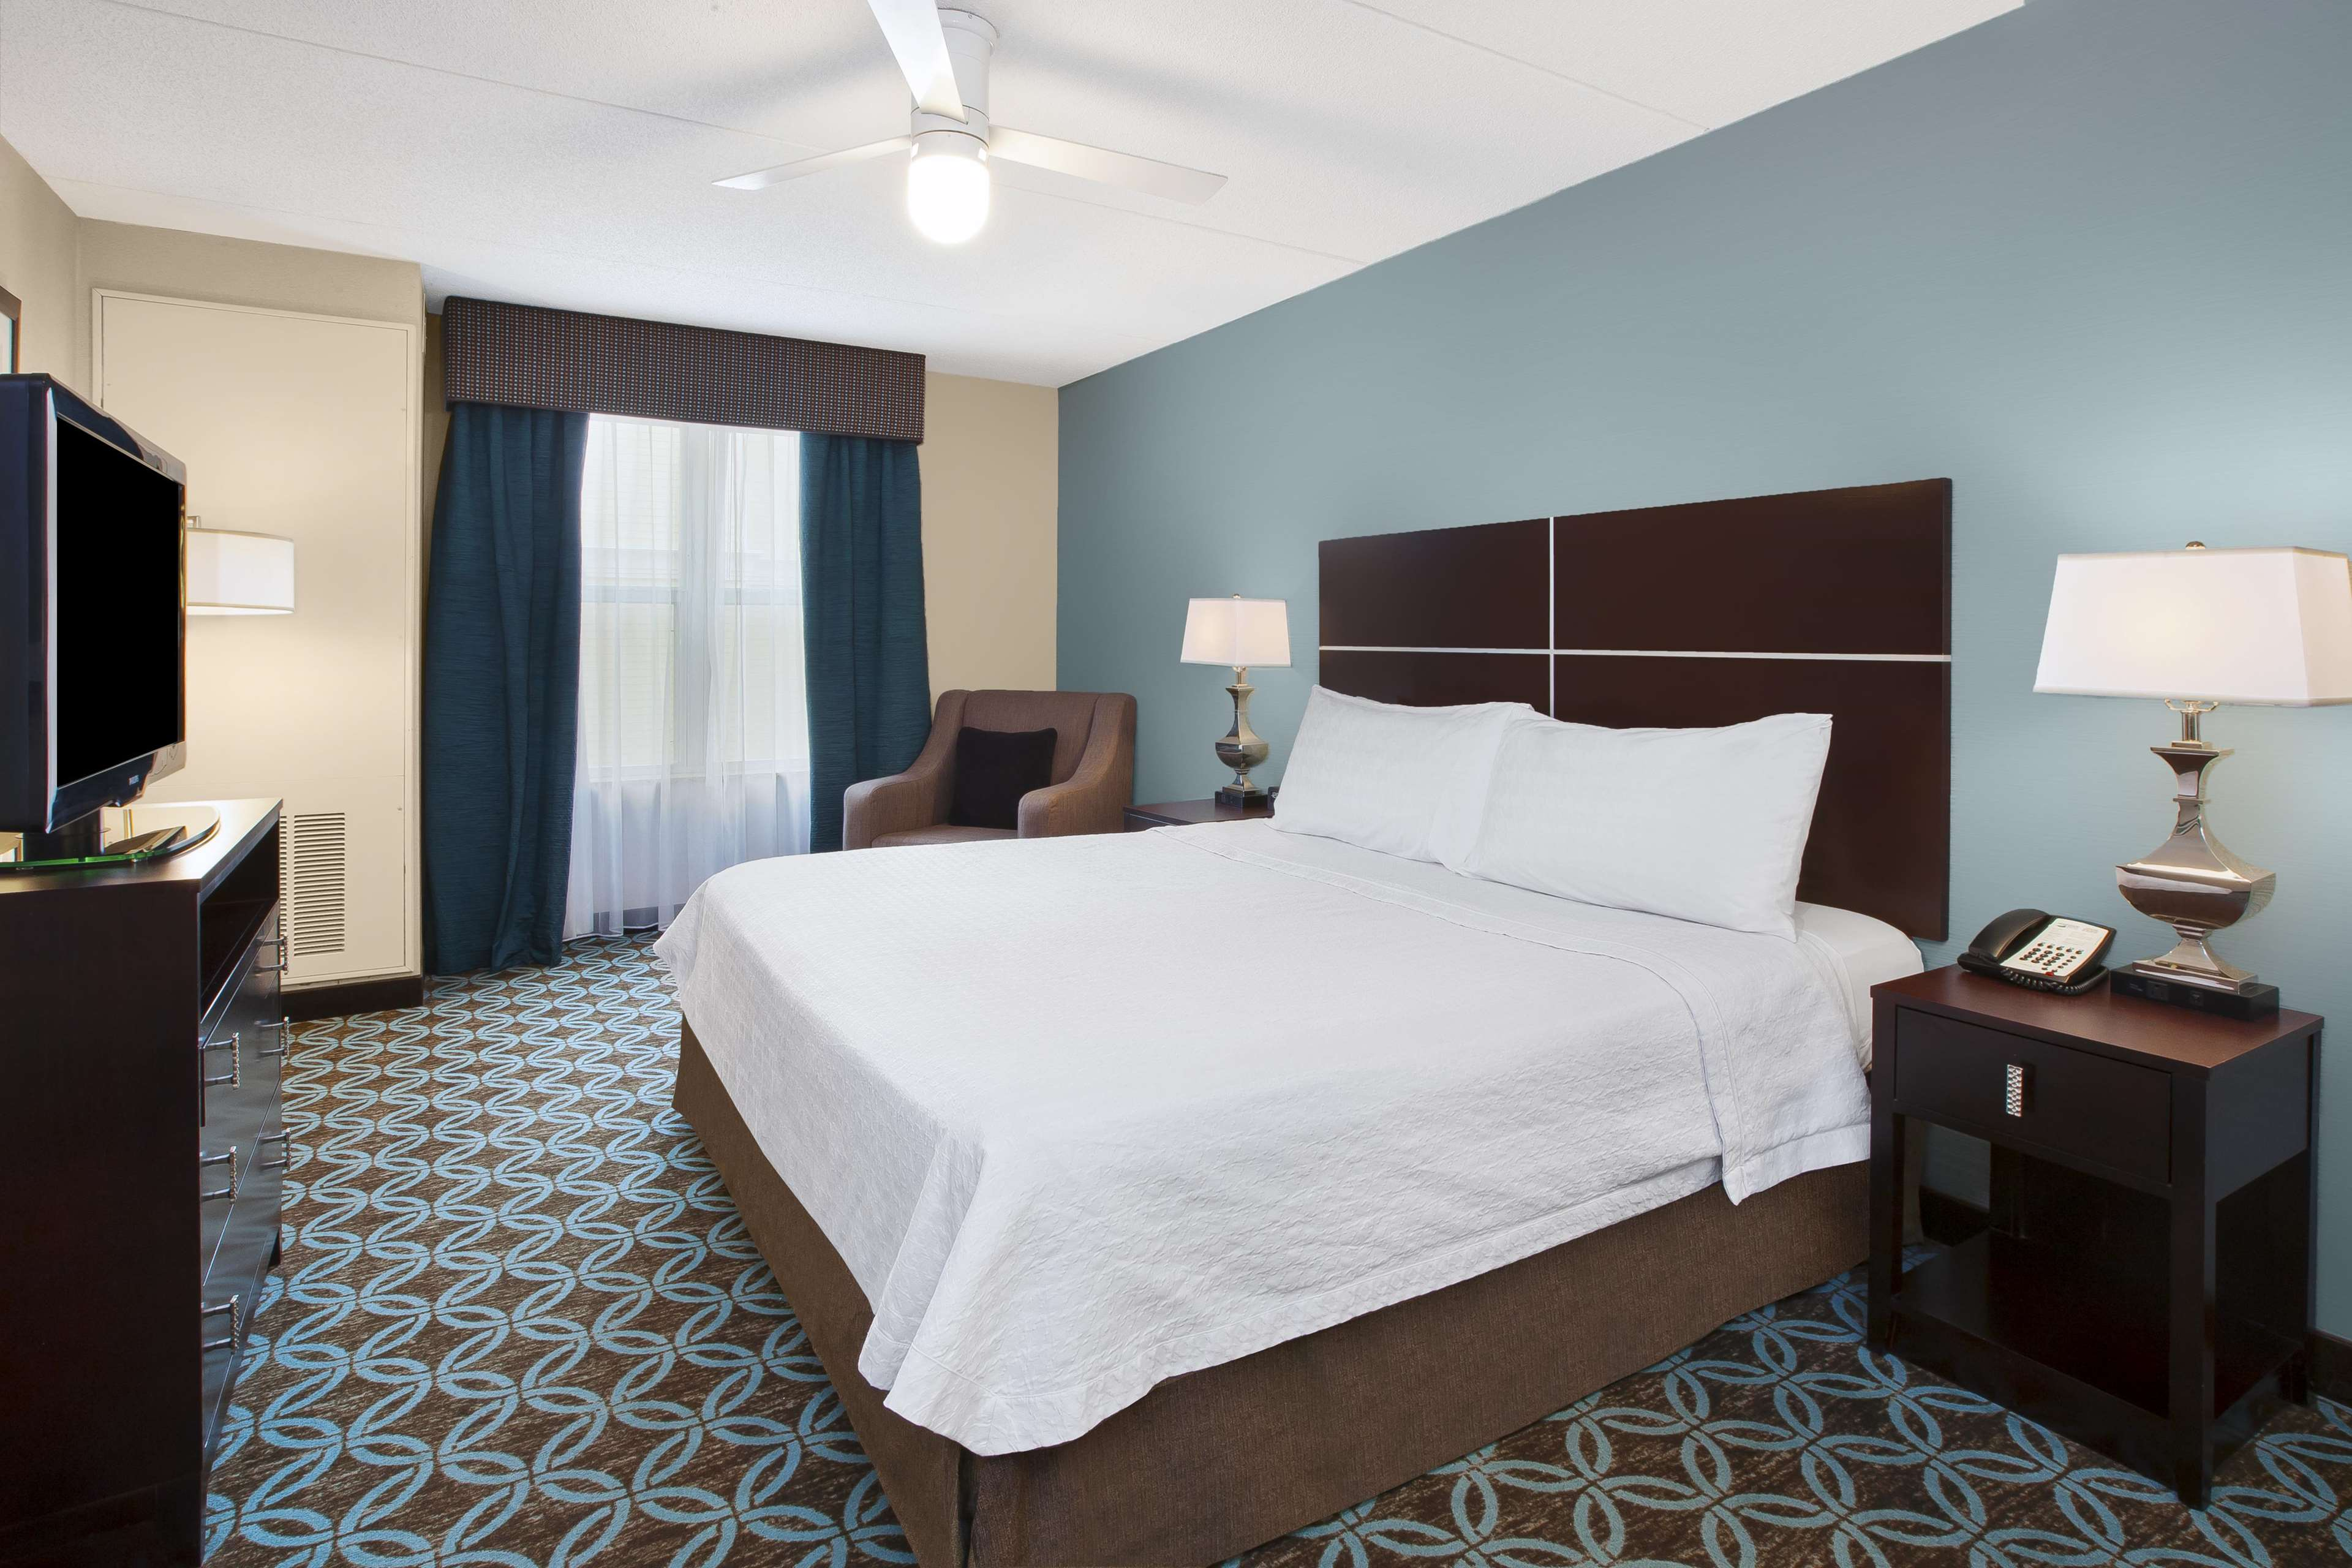 Homewood Suites by Hilton Boston/Canton, MA image 21